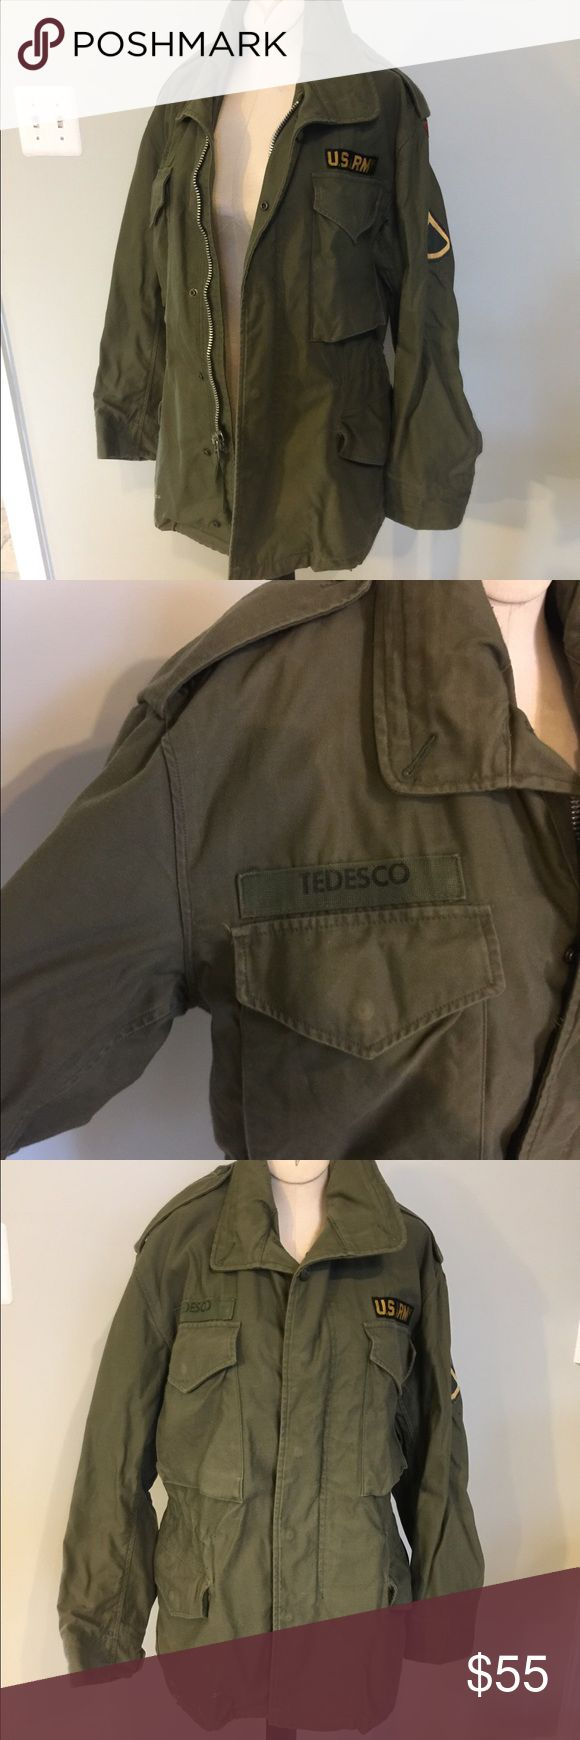 """Authentic Army Jacket Authentic Army jacket,Men's Sz Small or a woman's Med.Has the org name patch on it .Reads :Tedesco and the U.S Army patch.There is a little paint transfer on the bottom of the one corner of the jacket """"seen in picture""""Lot of character to this jacket.Nice worn in Condition. U.S Army Jackets & Coats Military & Field"""